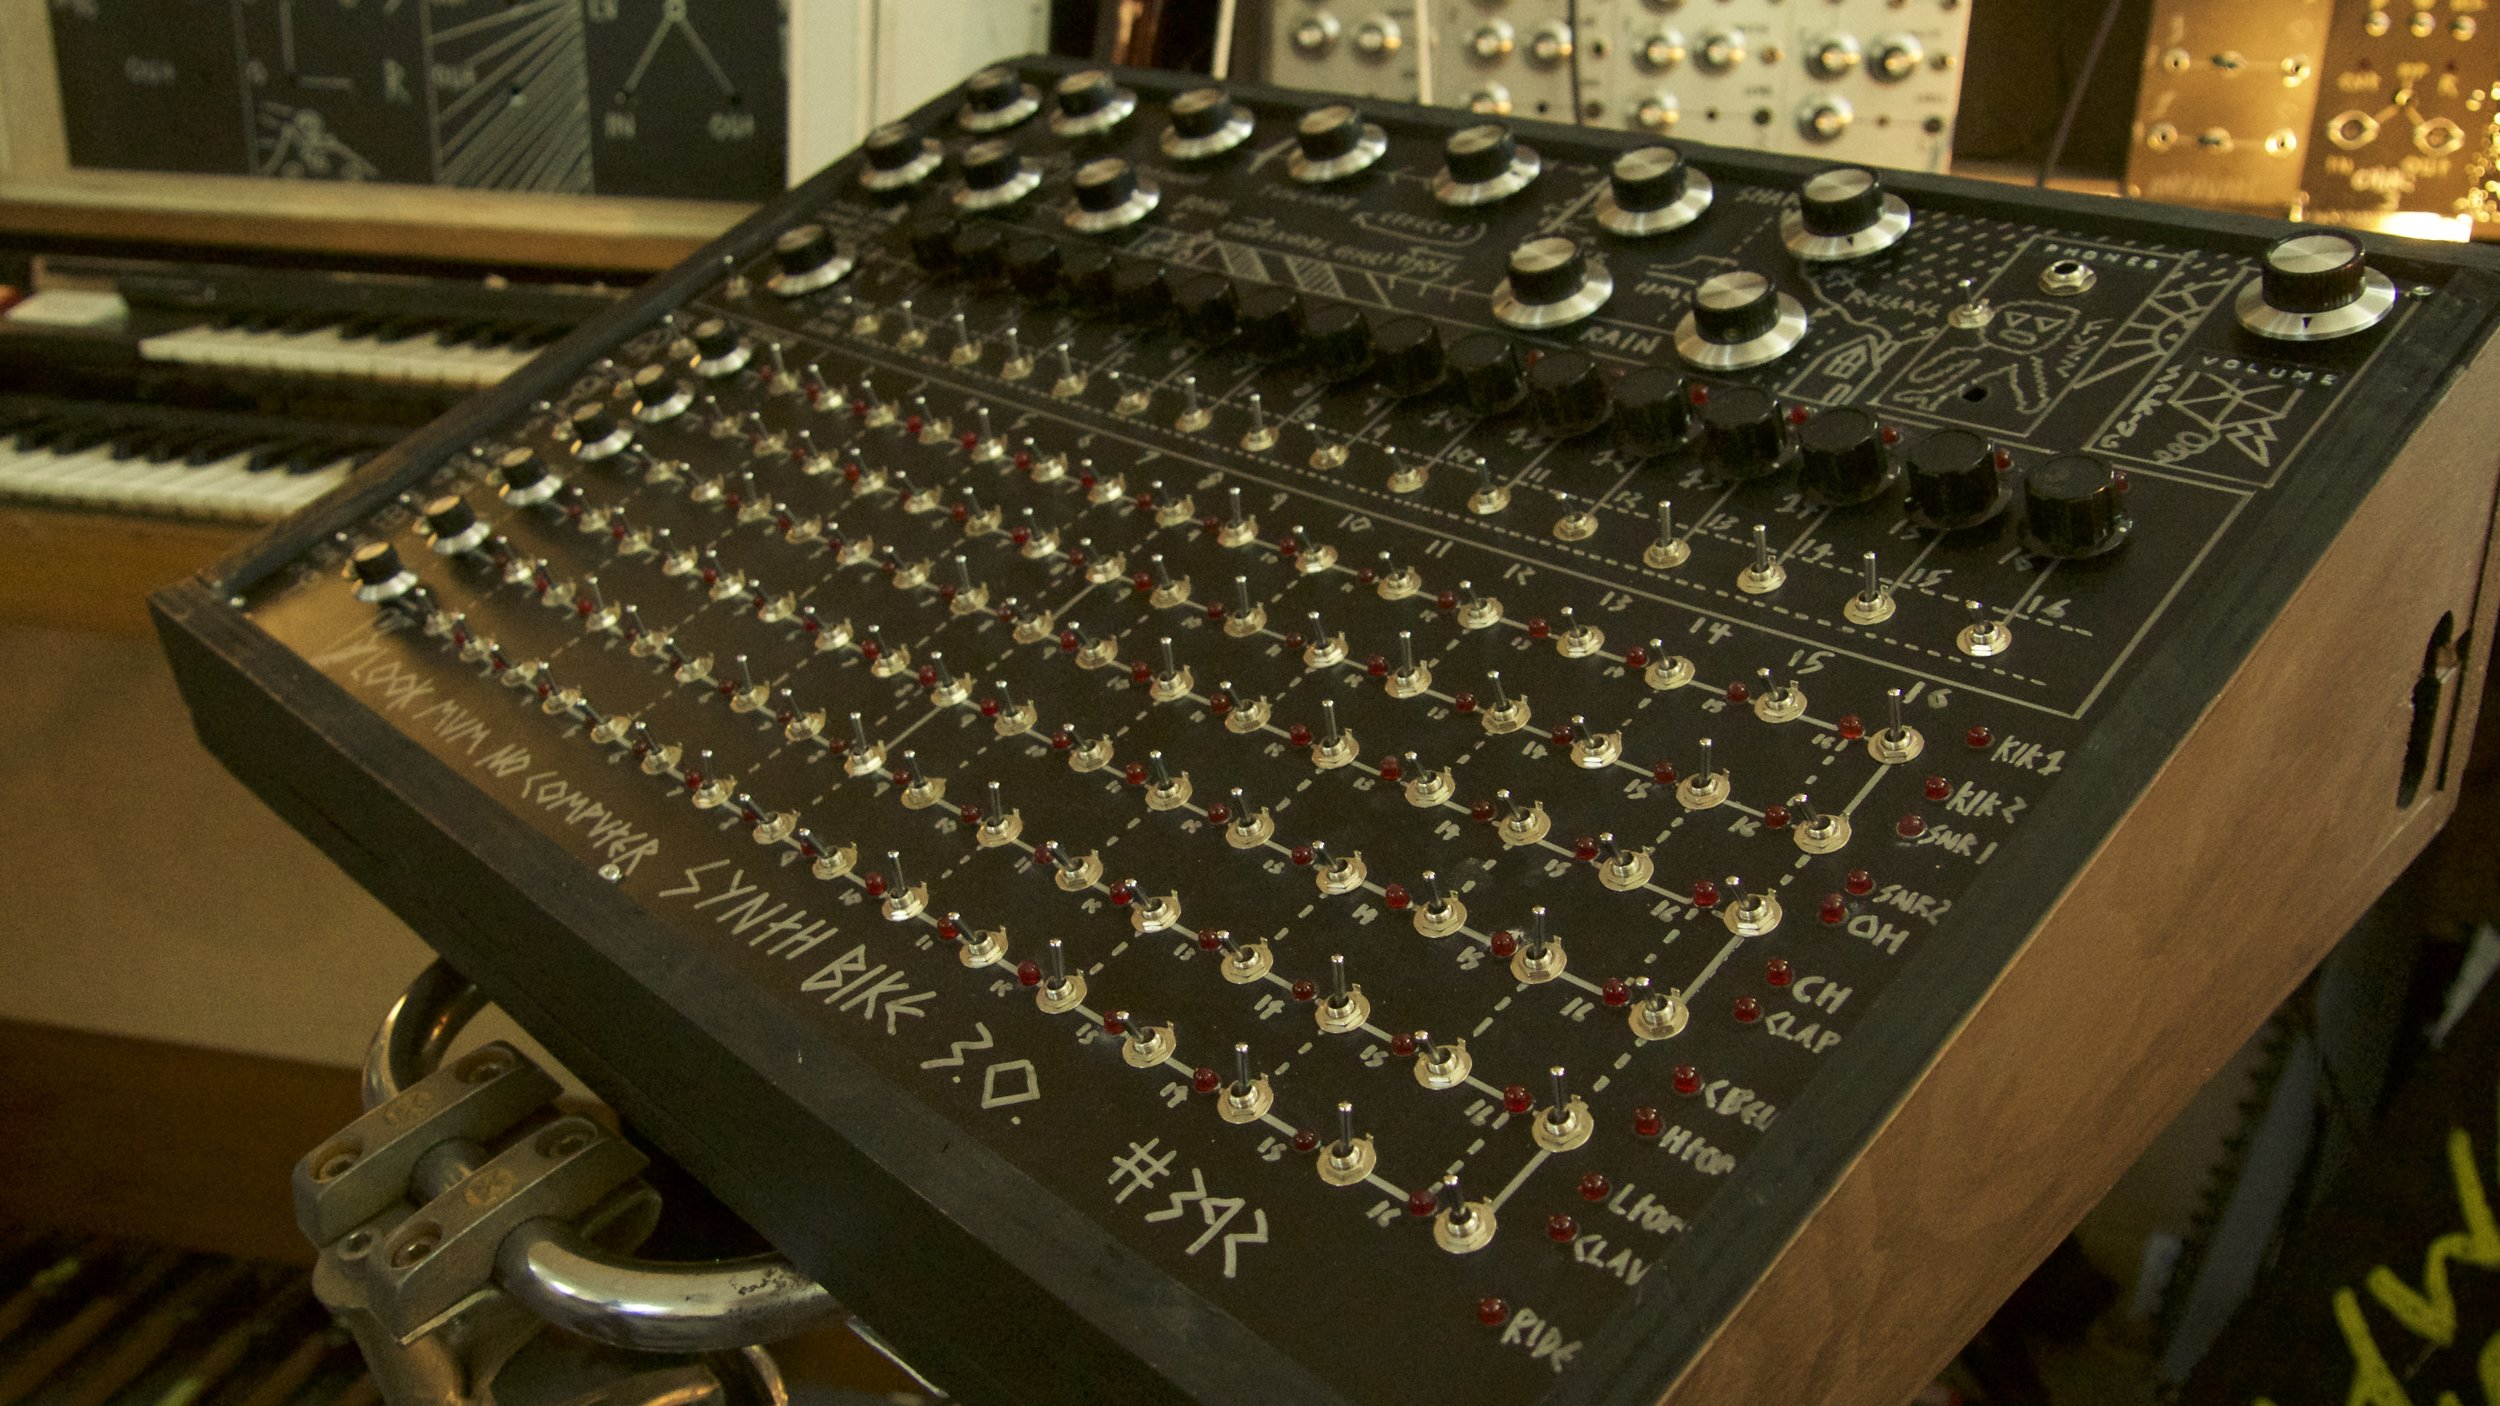 The controls. a little daunting, but its a lot more friendly than synth bike 2.0 i can tell you that!